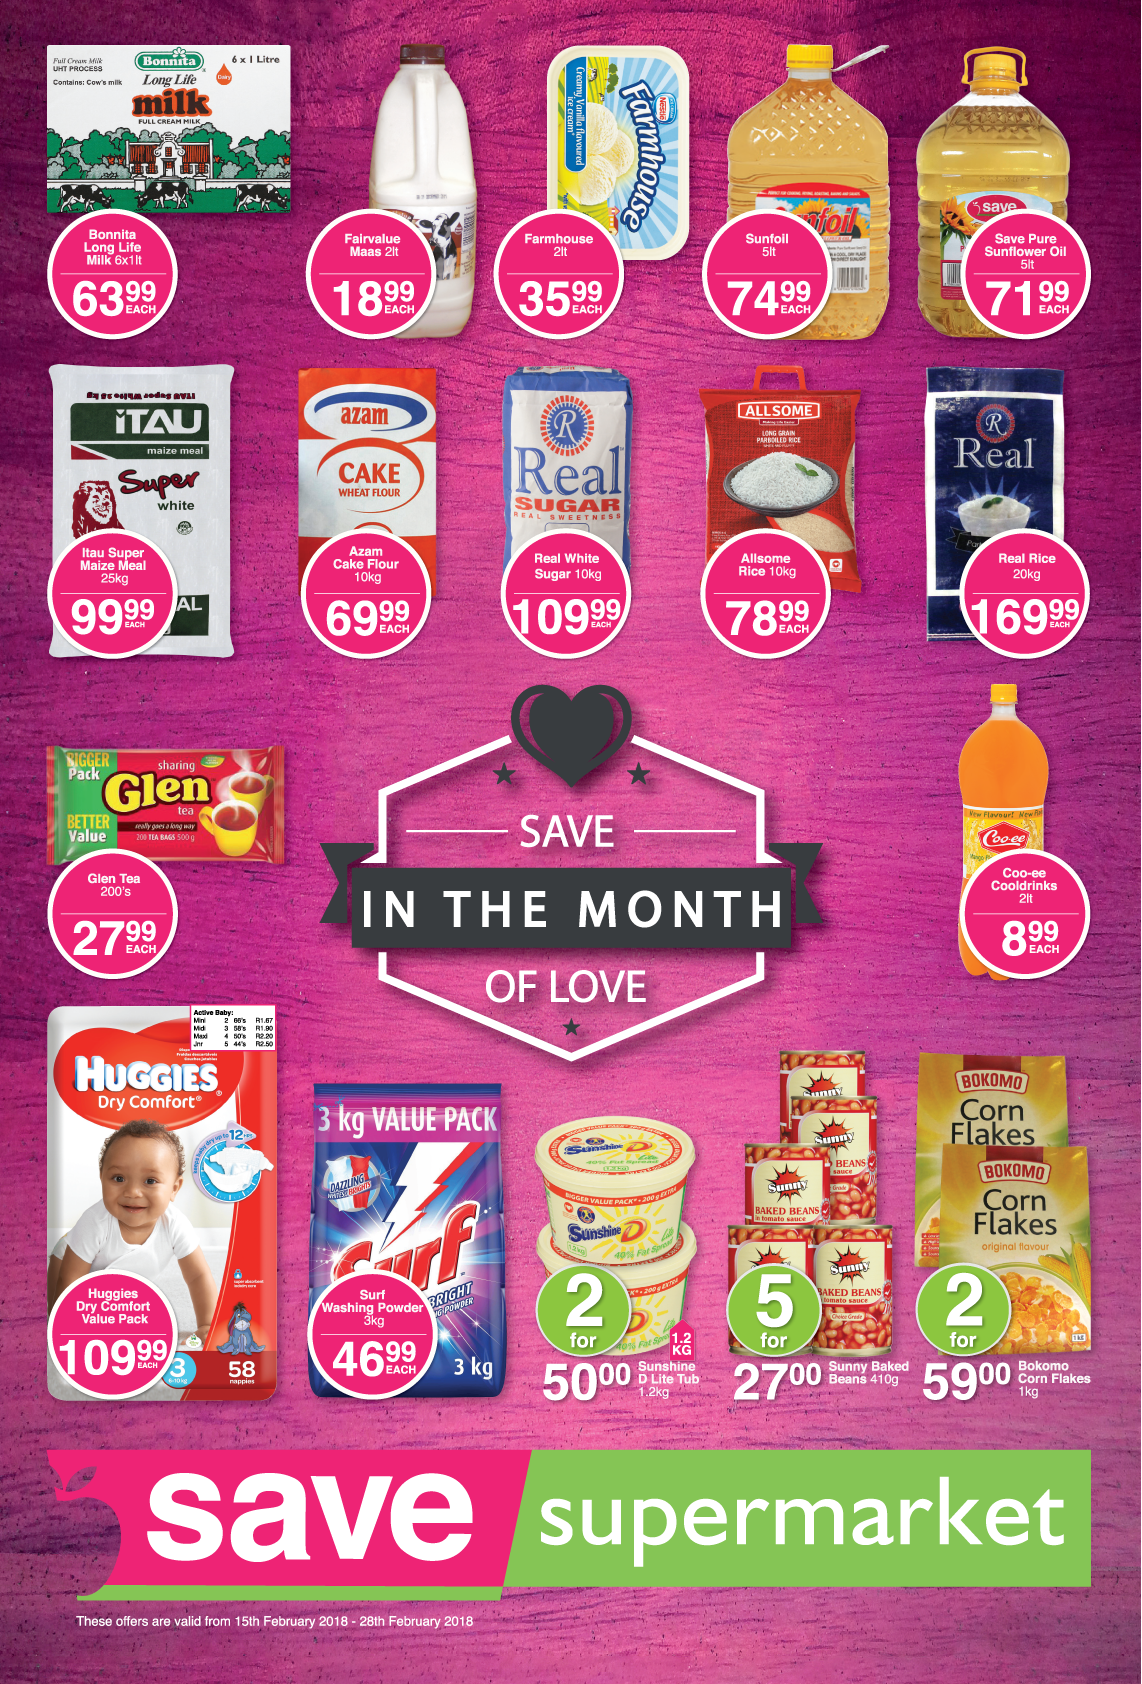 Save Supermarket Church Specials - until 28th February 2018